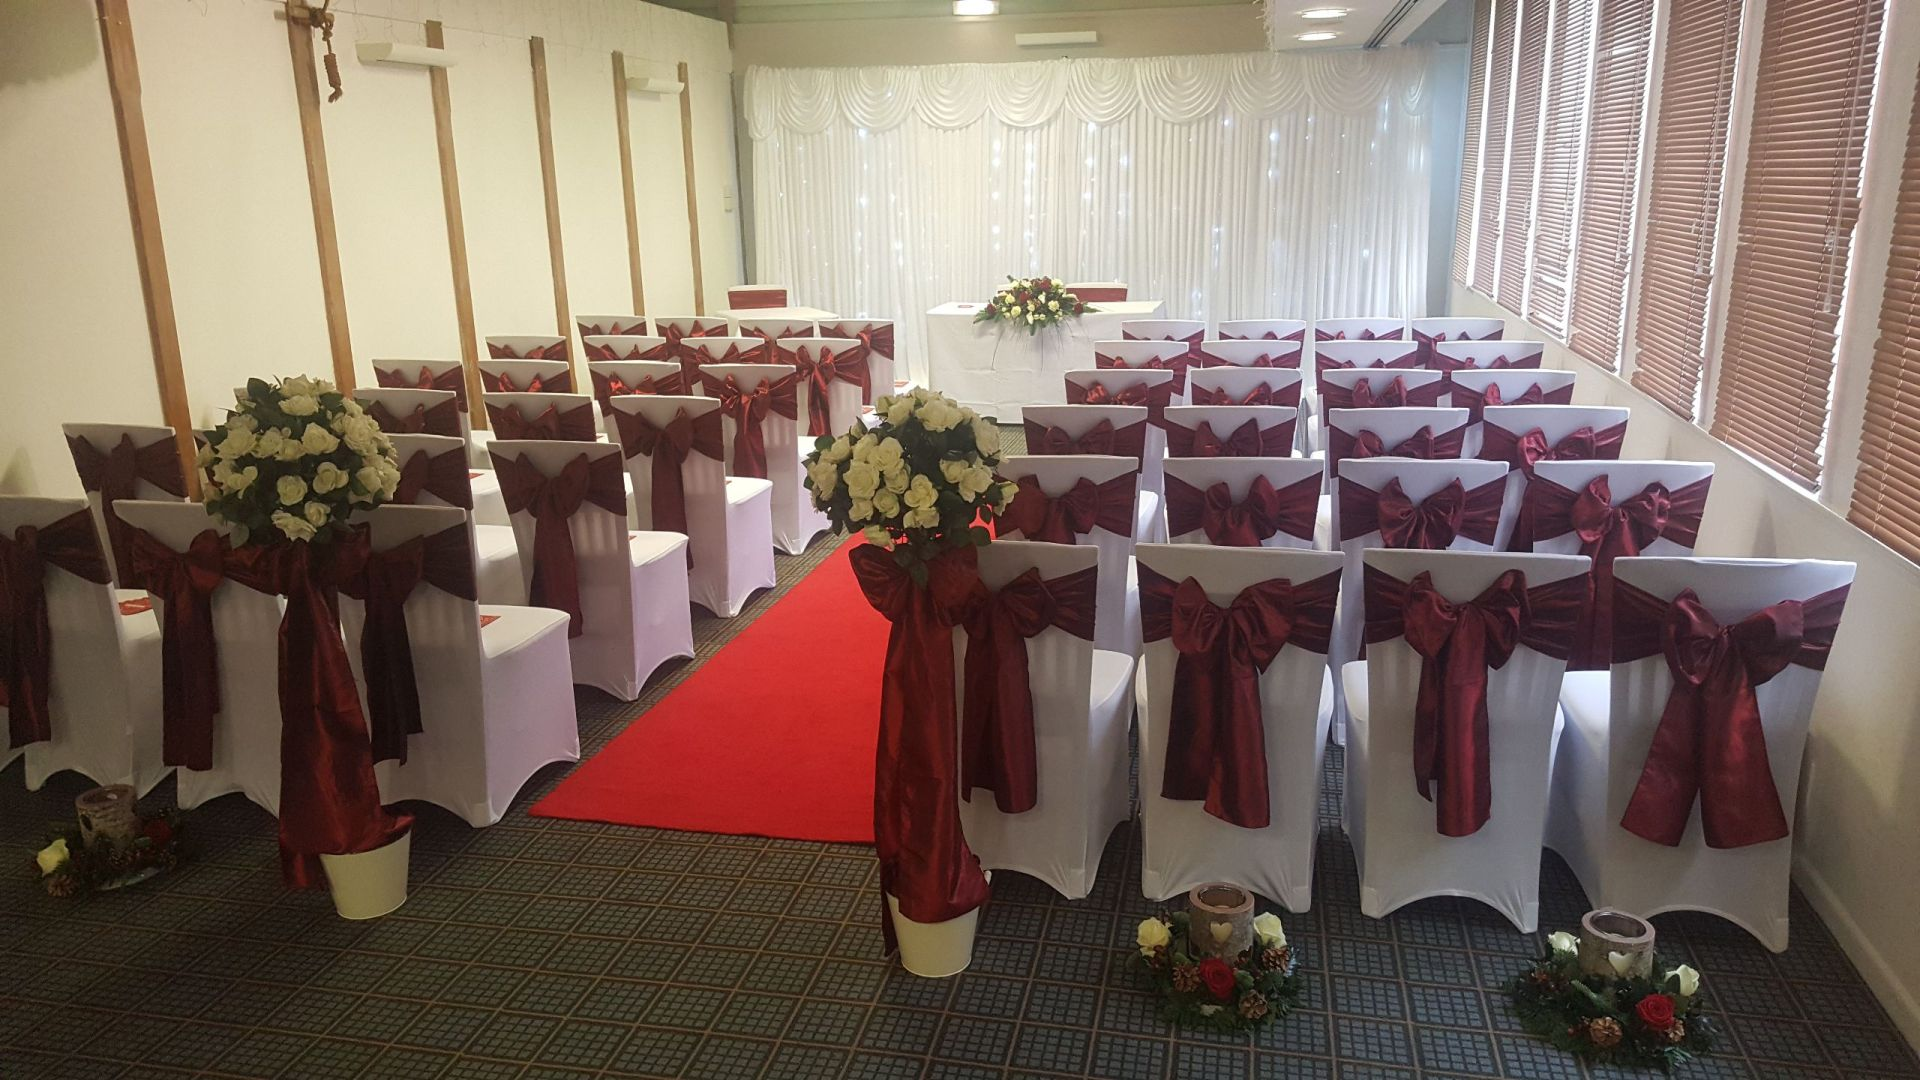 Holiday Inn Red themed Wedding